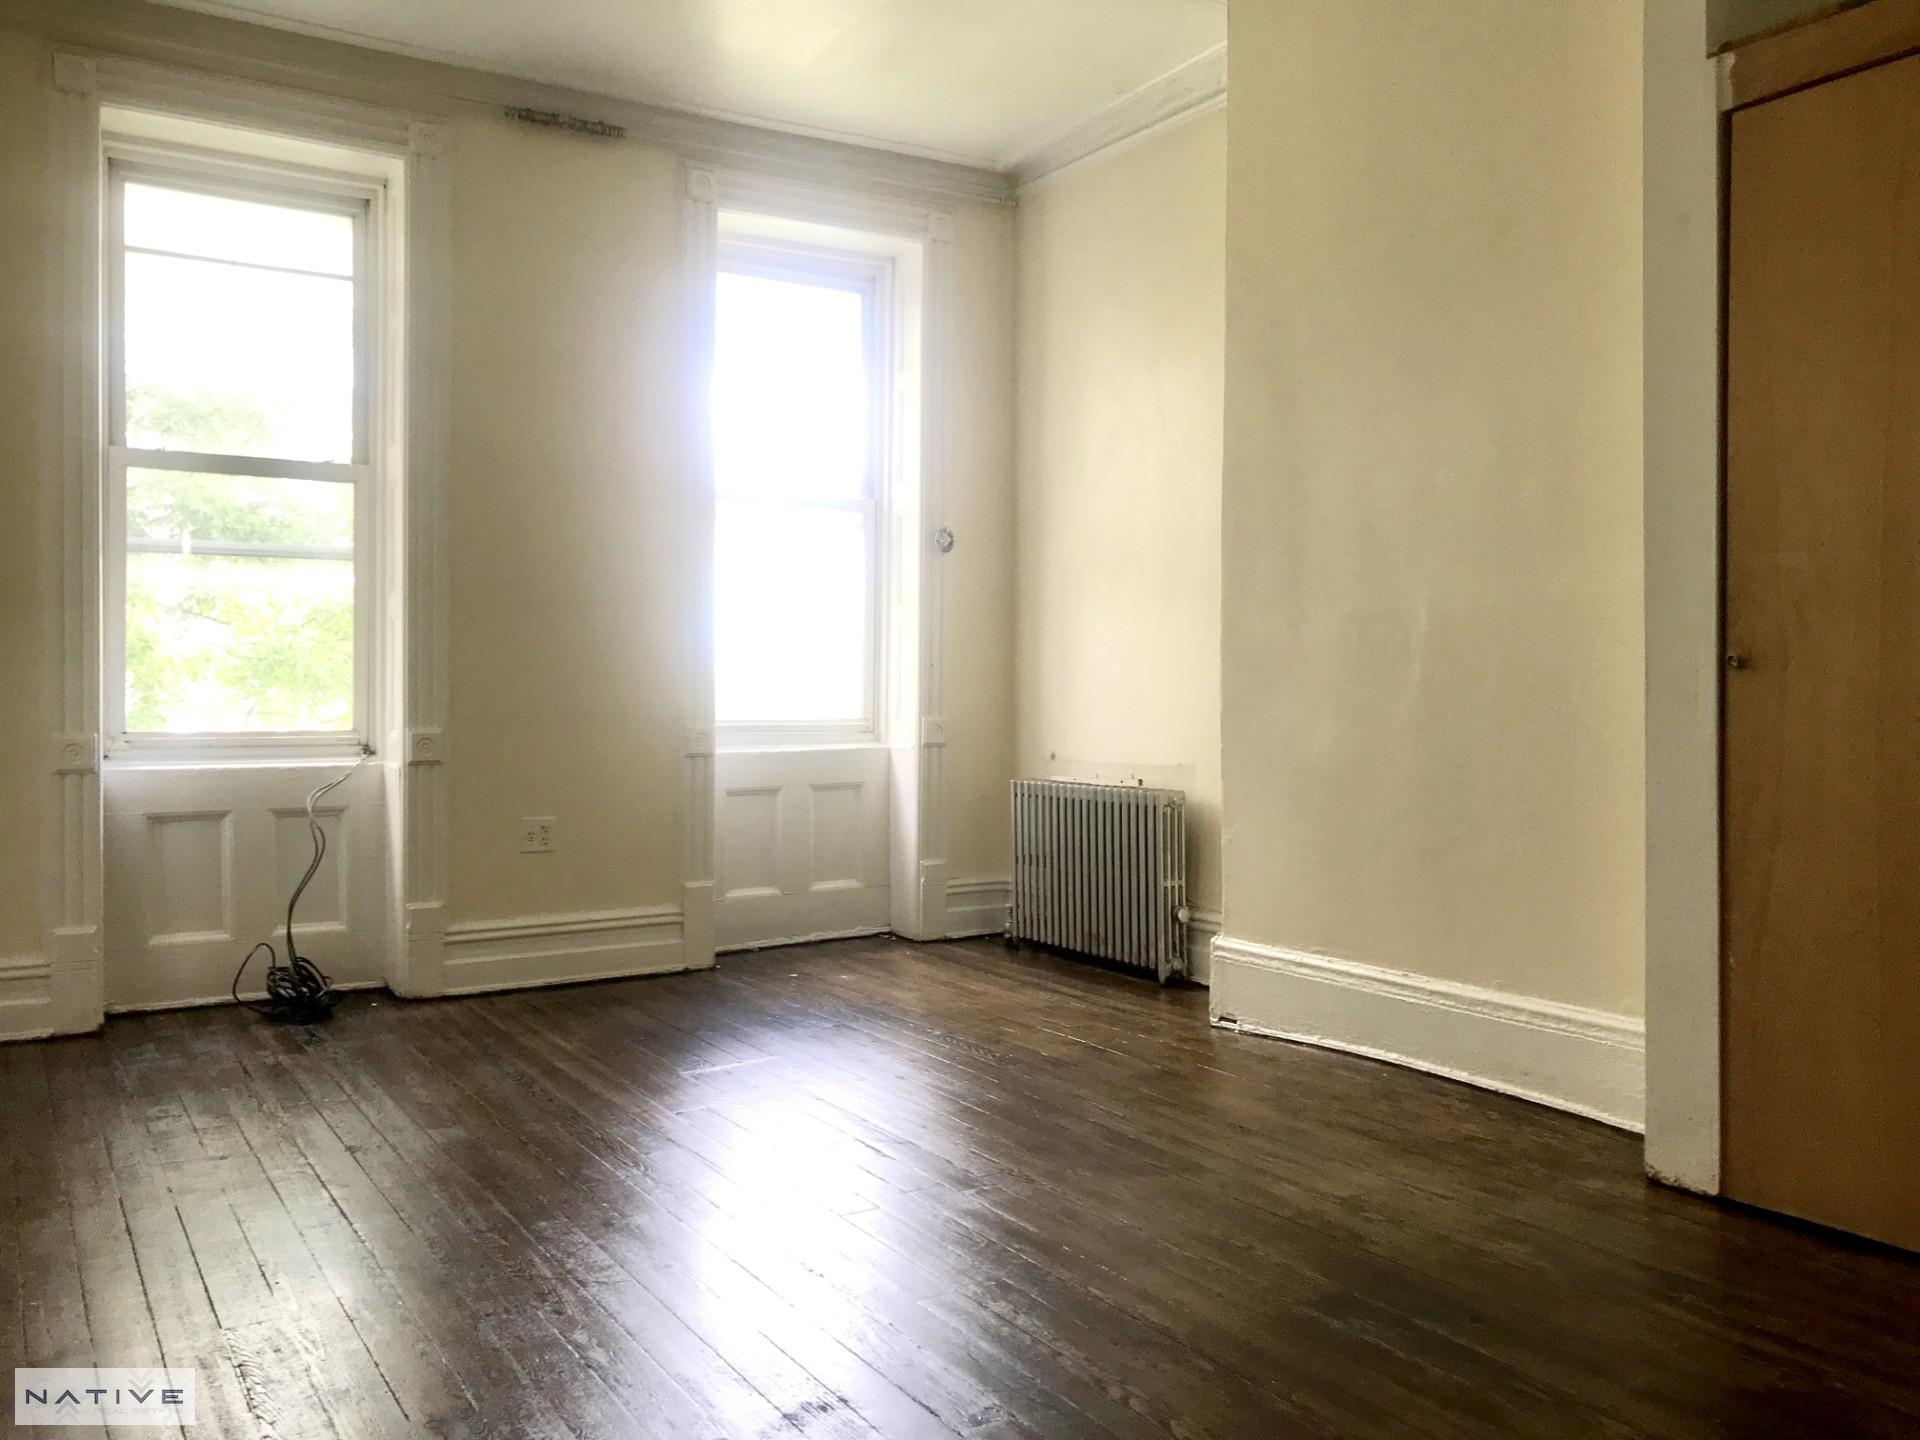 100 Huron Street, Apt 4L, Brooklyn, New York 11222